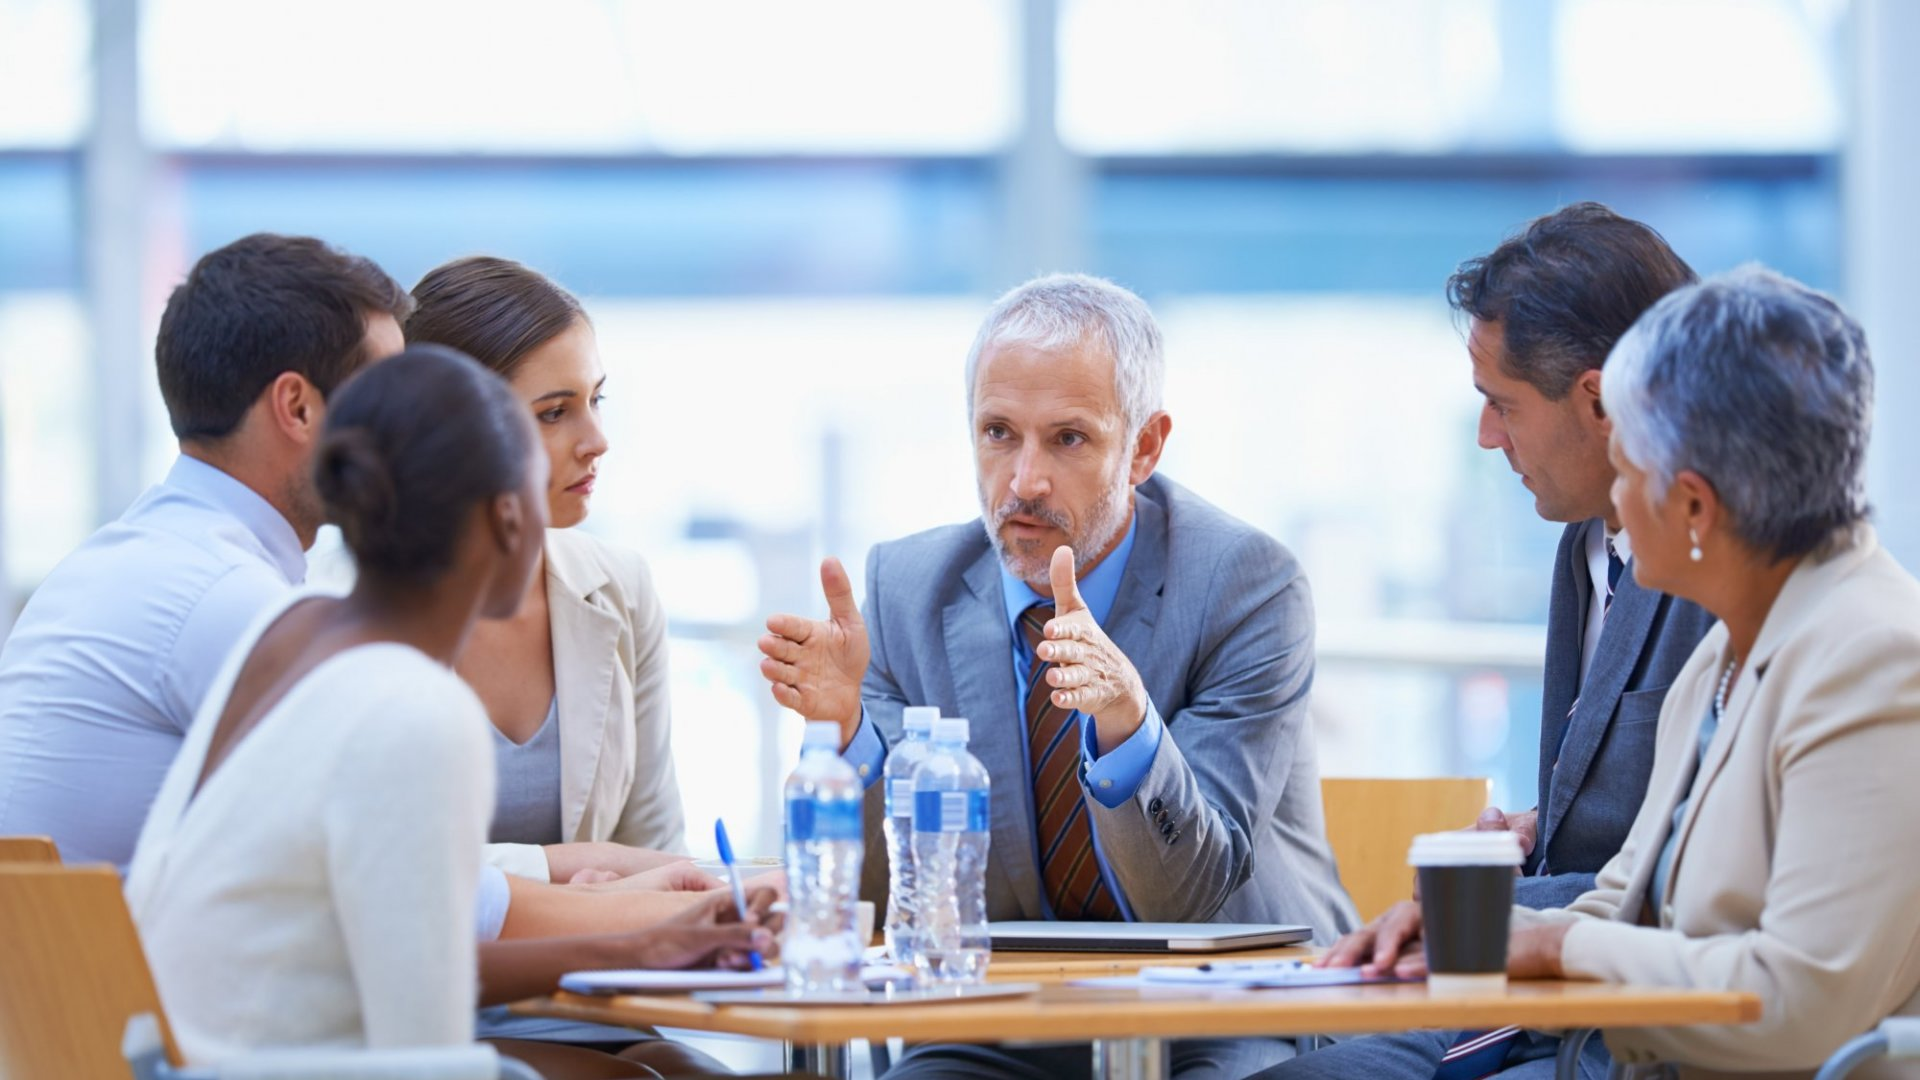 The 10 Key Coaching Best Practices to Develop Your Team Members